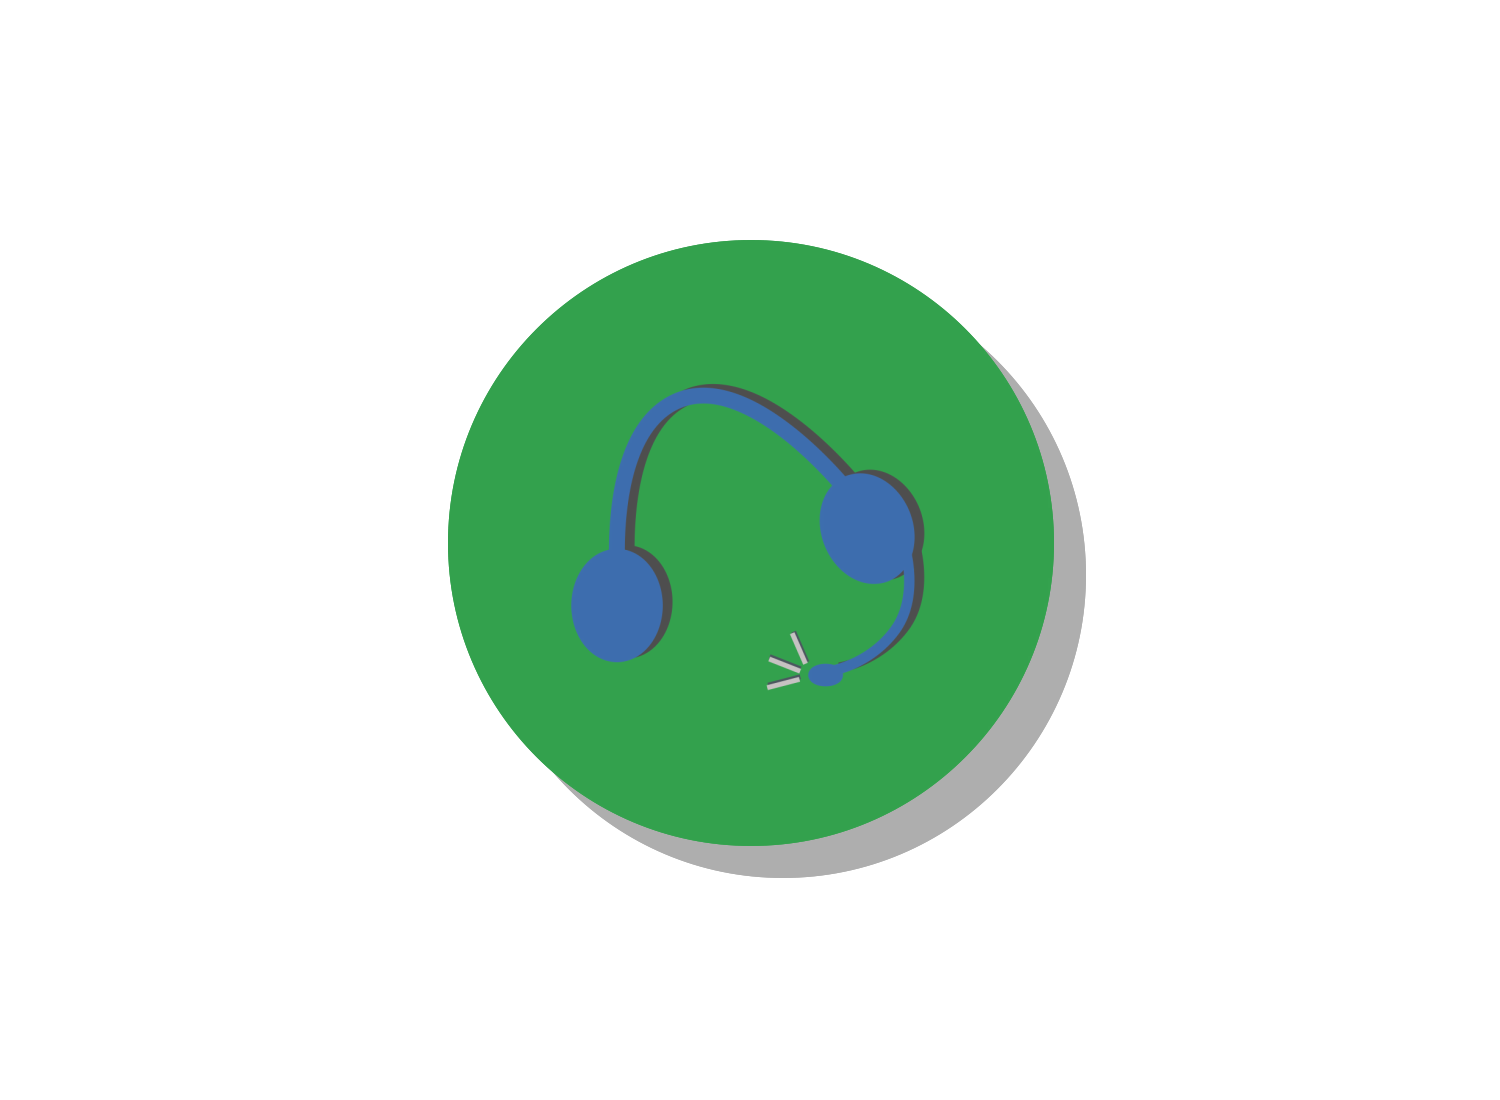 support_circle_00000.png